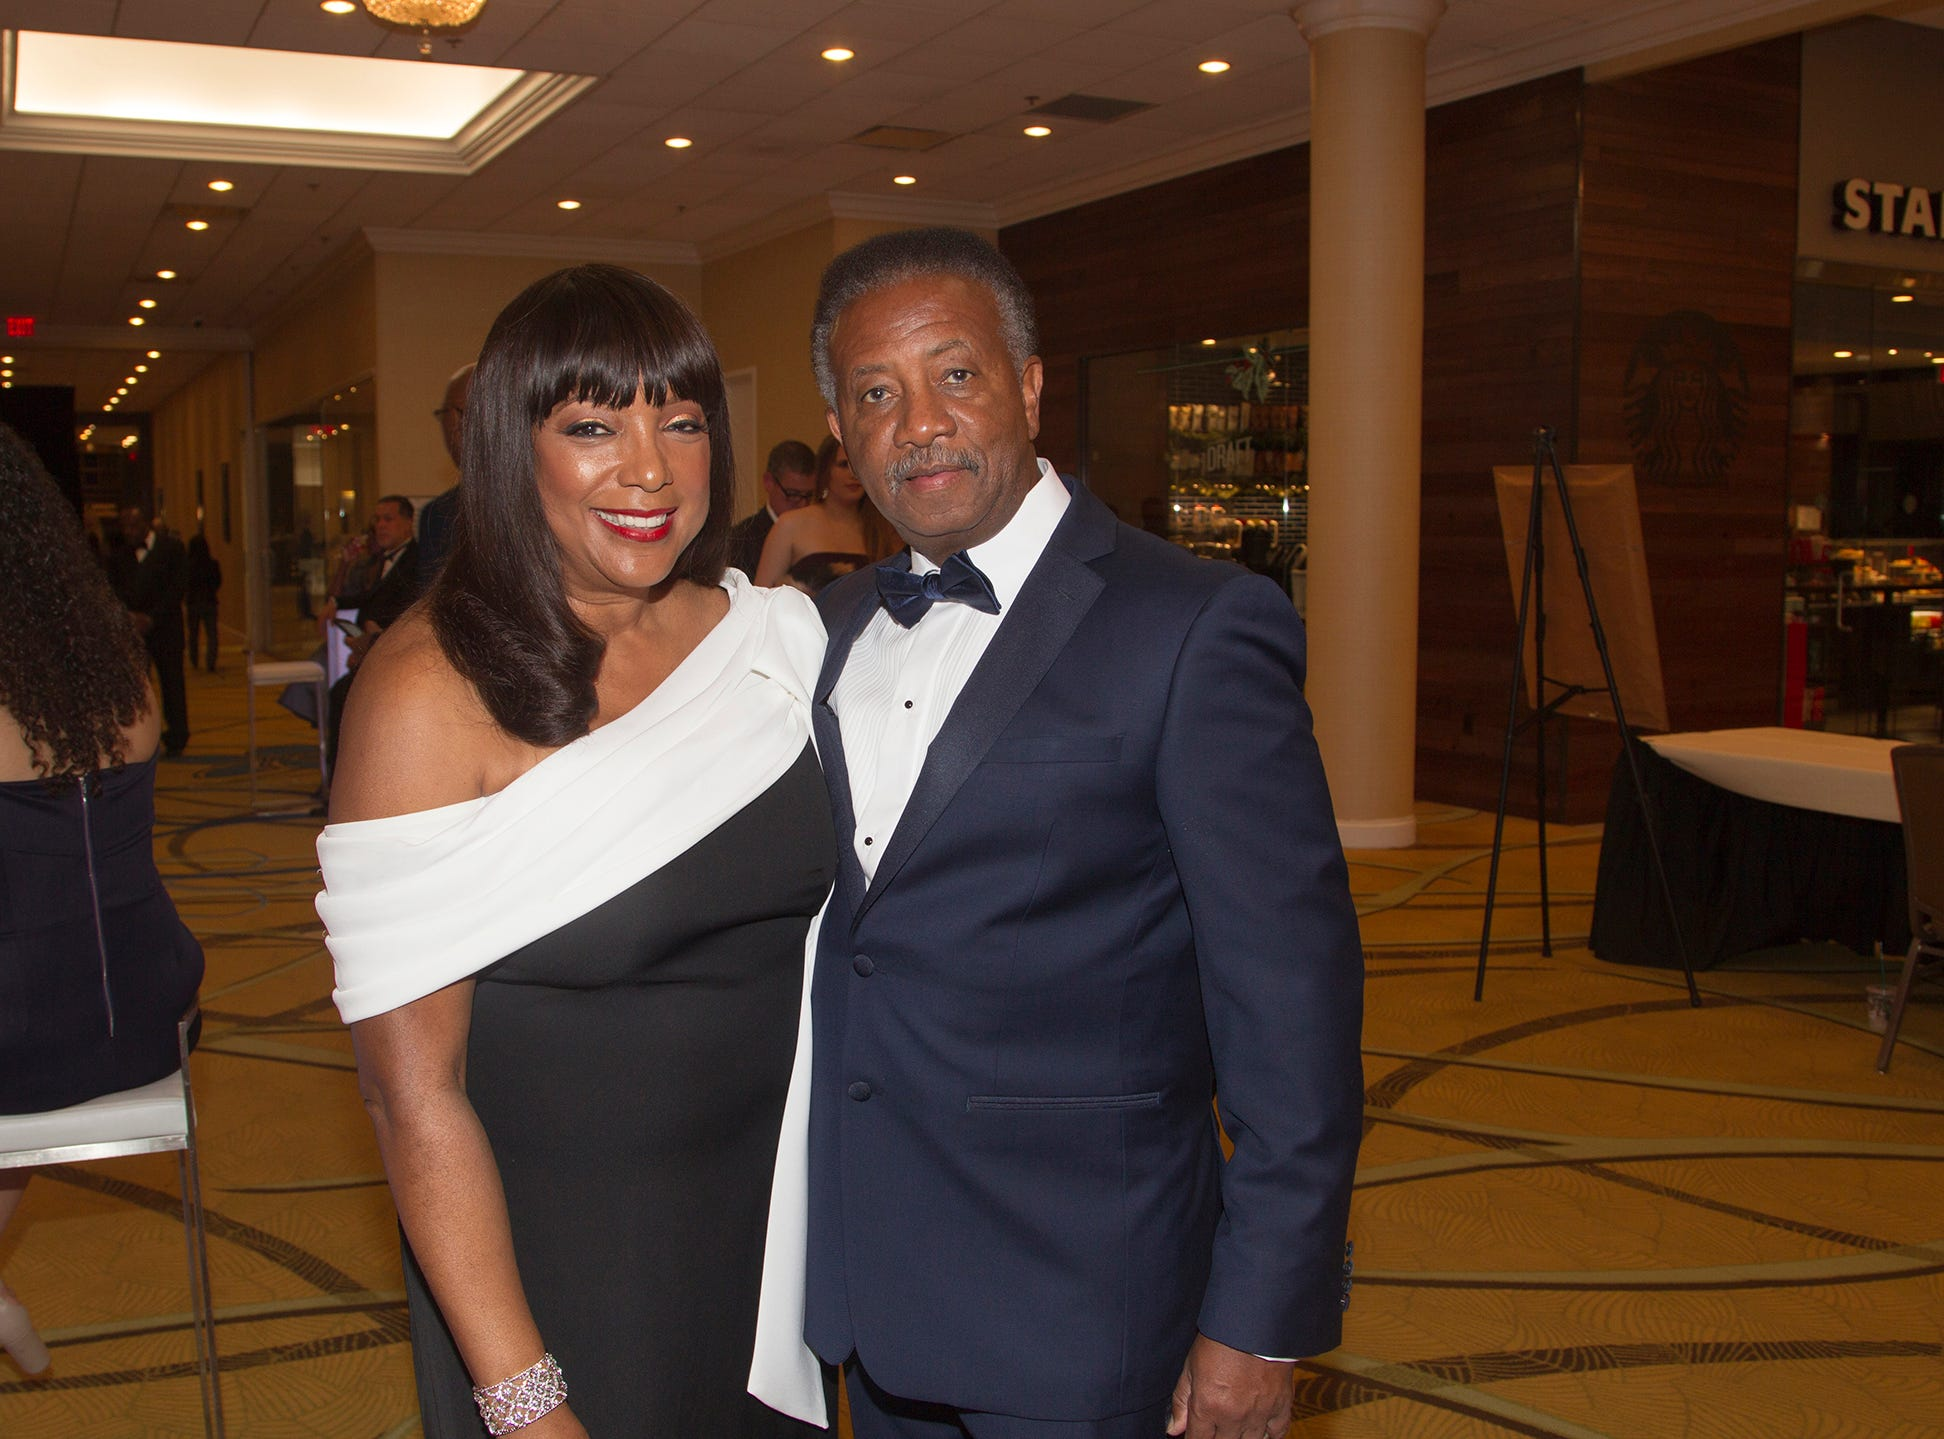 Mary and Johnnie Lee. Jessie Banks Foundation holds 16th annual Scholarship Awards Gala in Teaneck. 11/09/2018